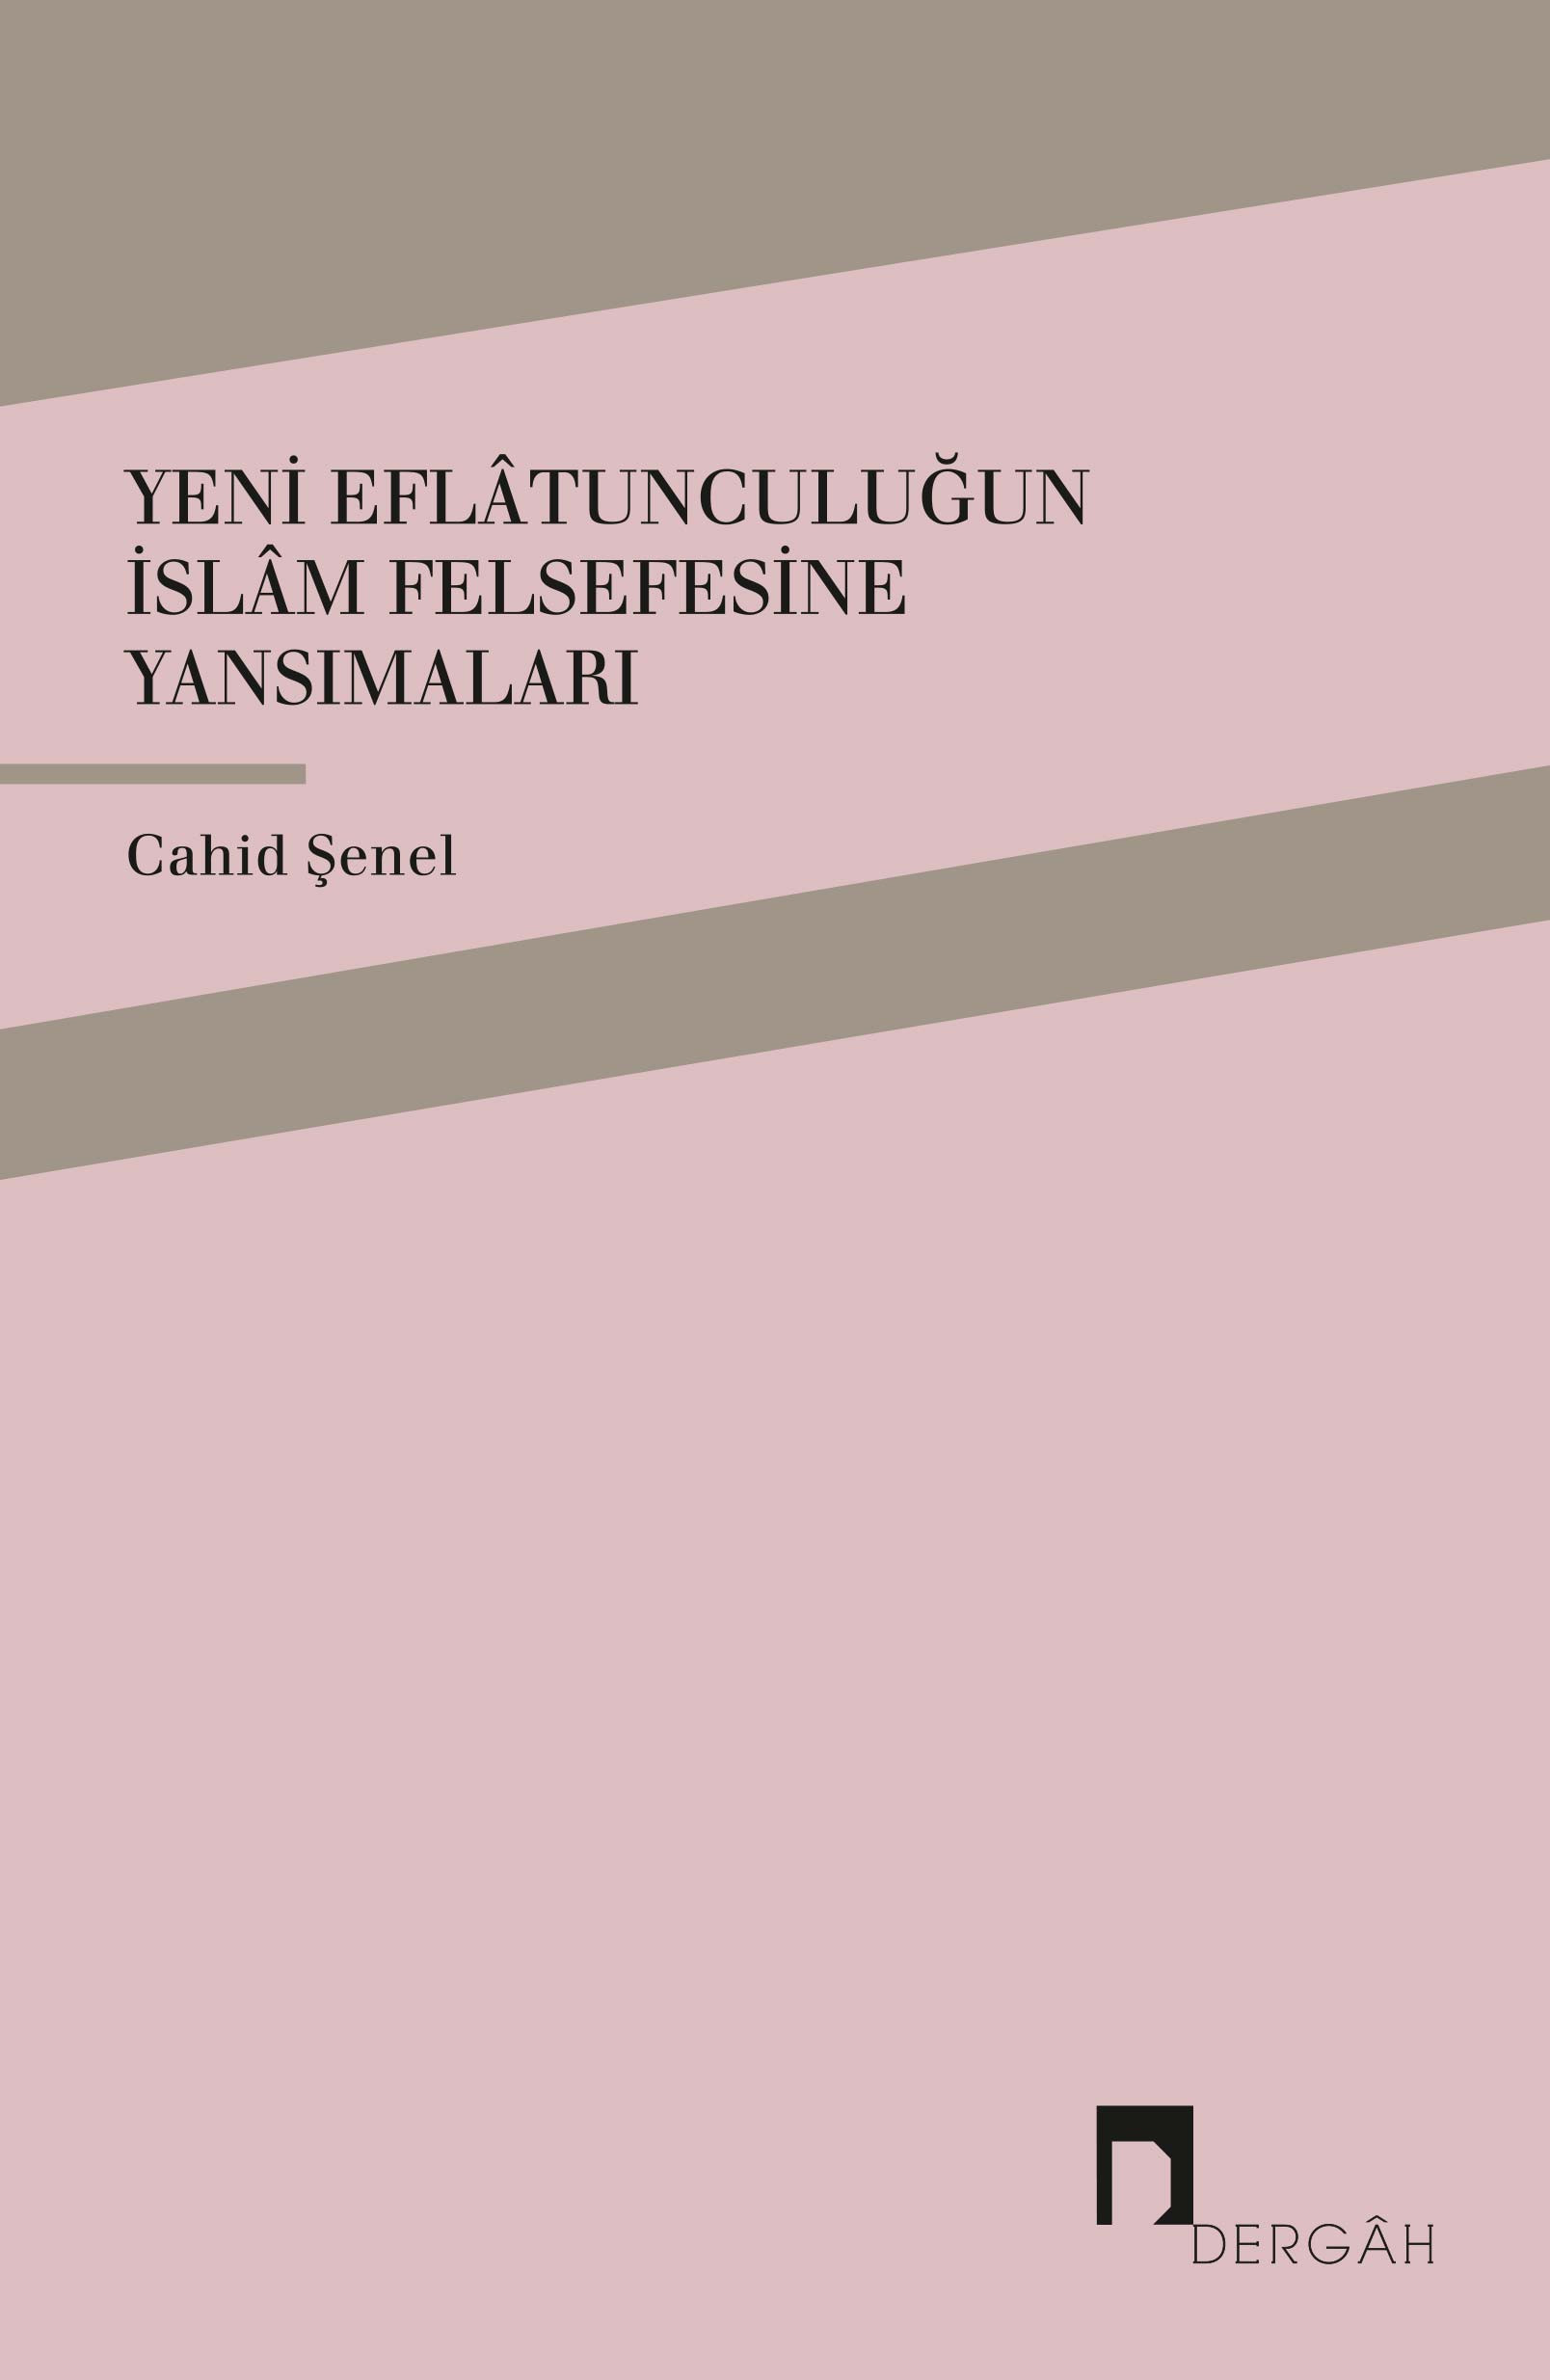 Reflections of Neoplatonism on the Islamic Thought